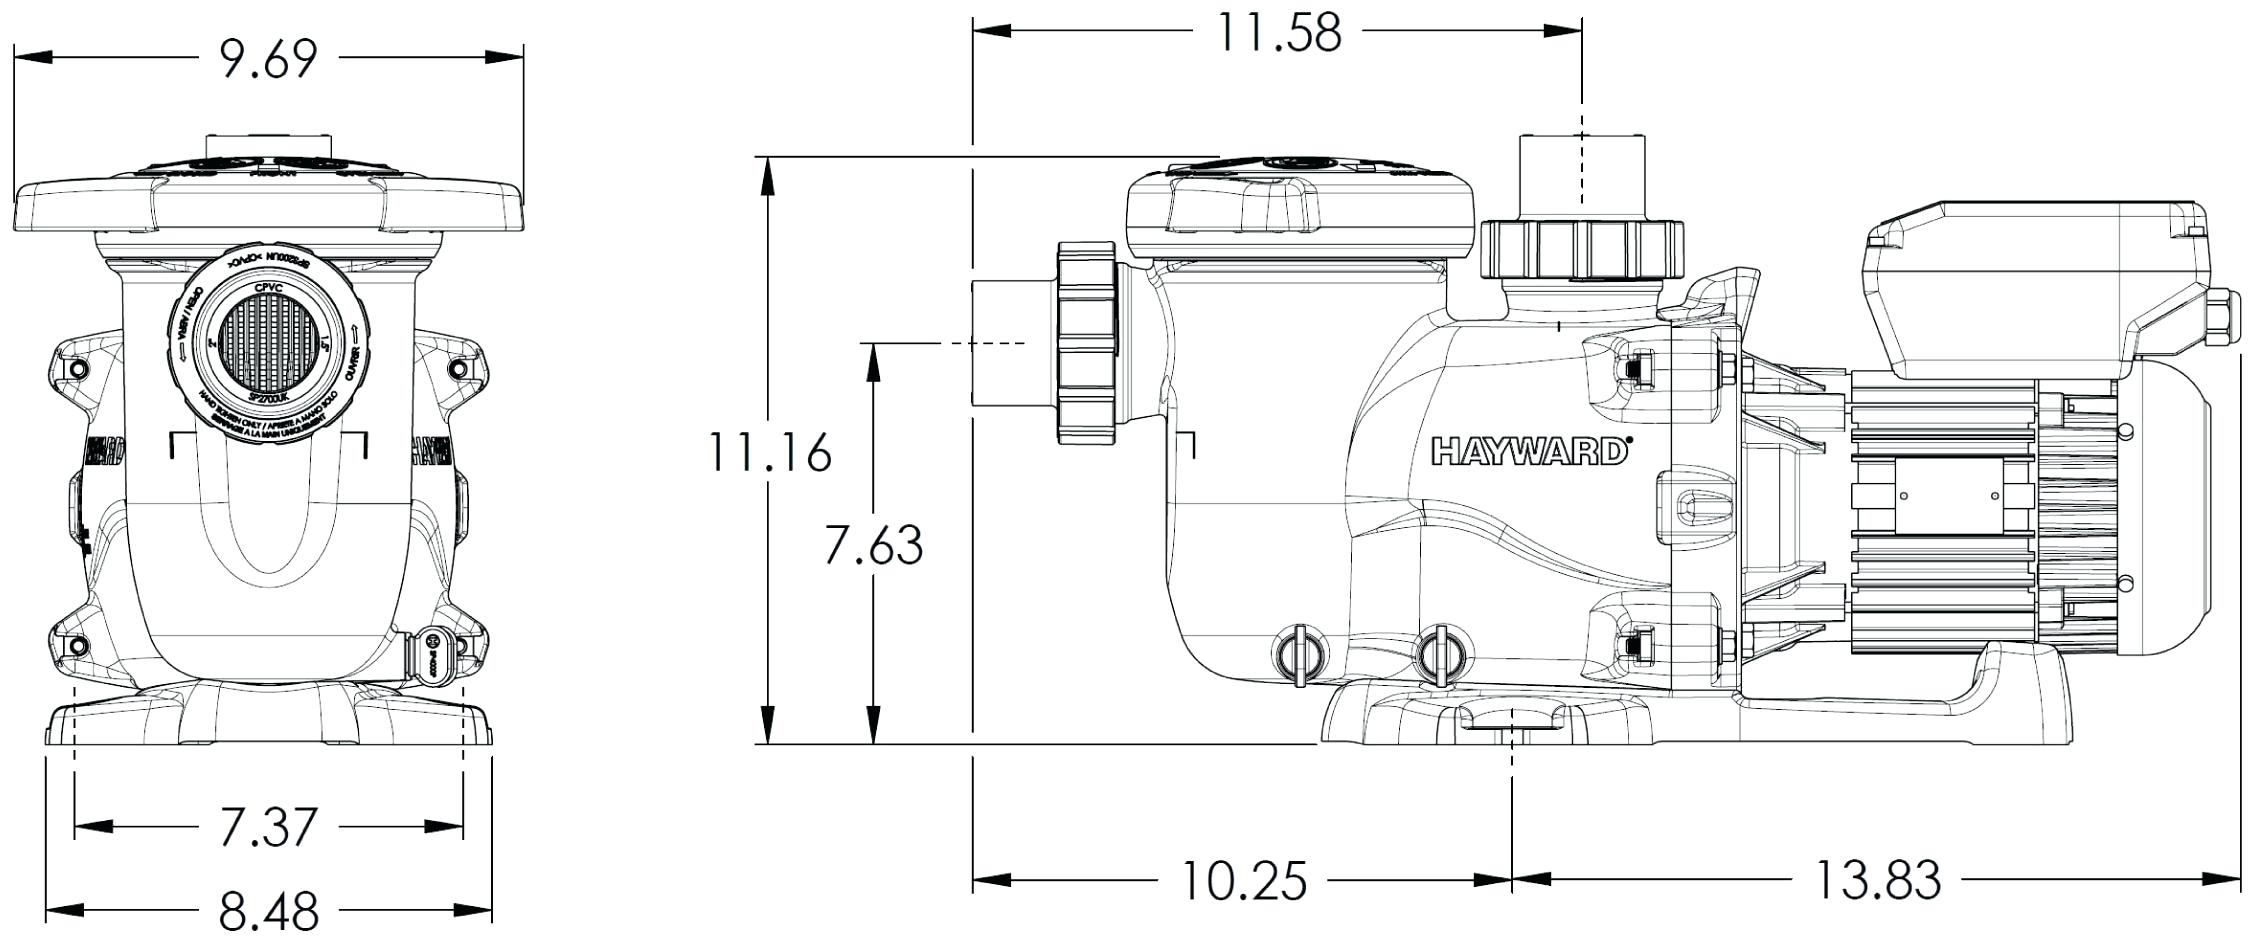 Find Out Here Hayward Super Pump 1.5 Hp Wiring Diagram